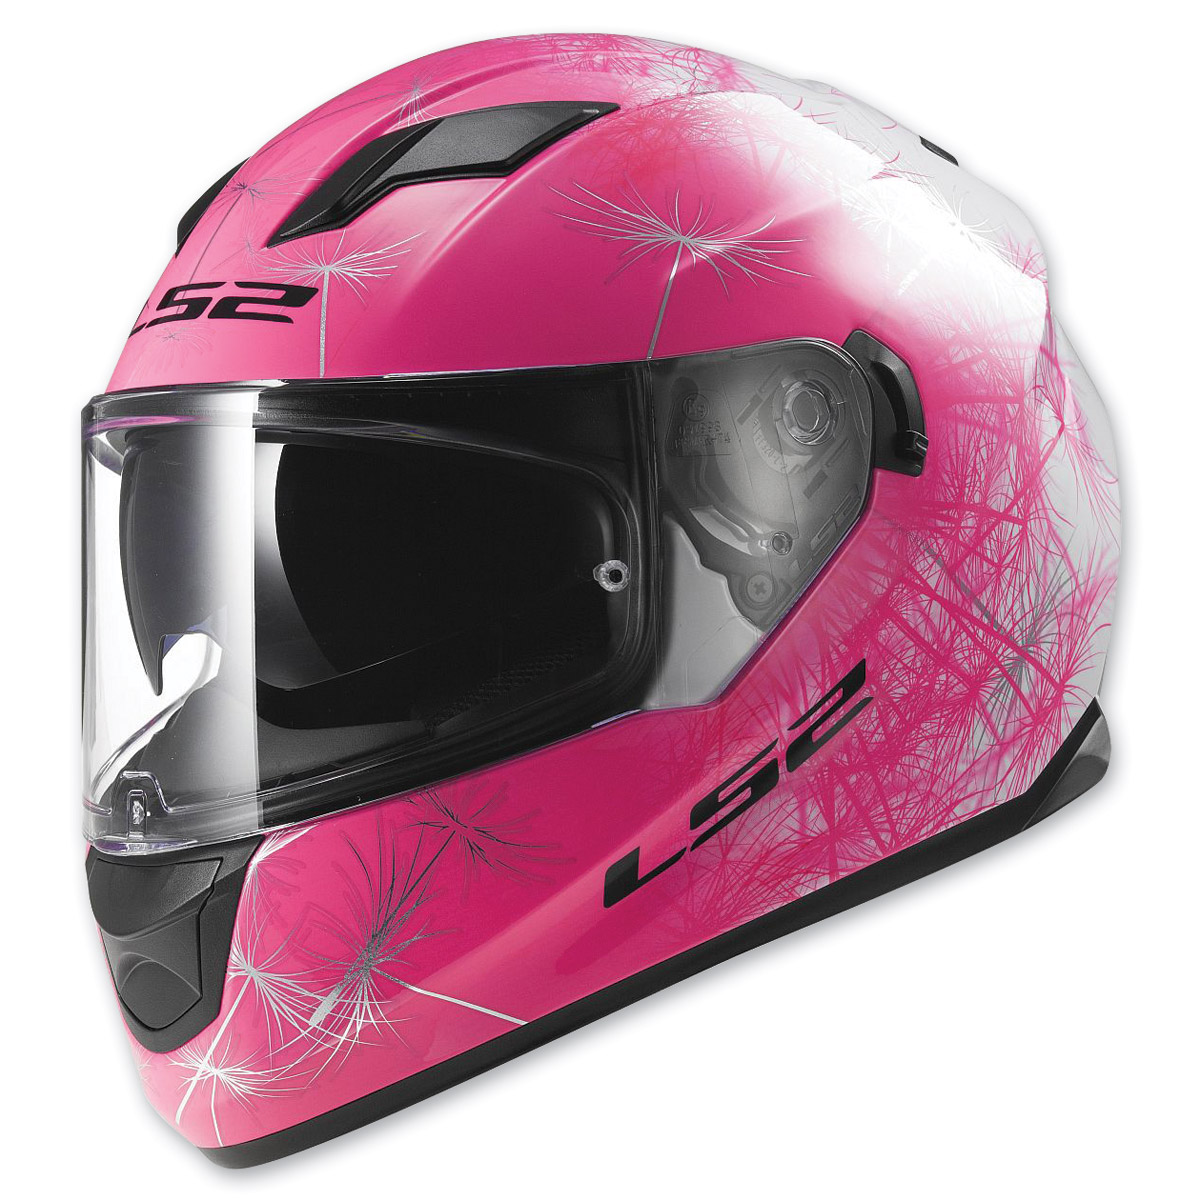 About Us. FortNine is an online store for motorcycle gear and motorcycle accessories in Canada. Our goal is to service Canadian riders with the most extensive selection of Motorcycle Helmets, Motorcycle Jackets, Motorcycle Pants, Motorcycle Gloves, Motorcycle Boots, Motorcycles Tires, Casual Apparel, Motorcycle Parts, Motocross Gear, Snowmobile.